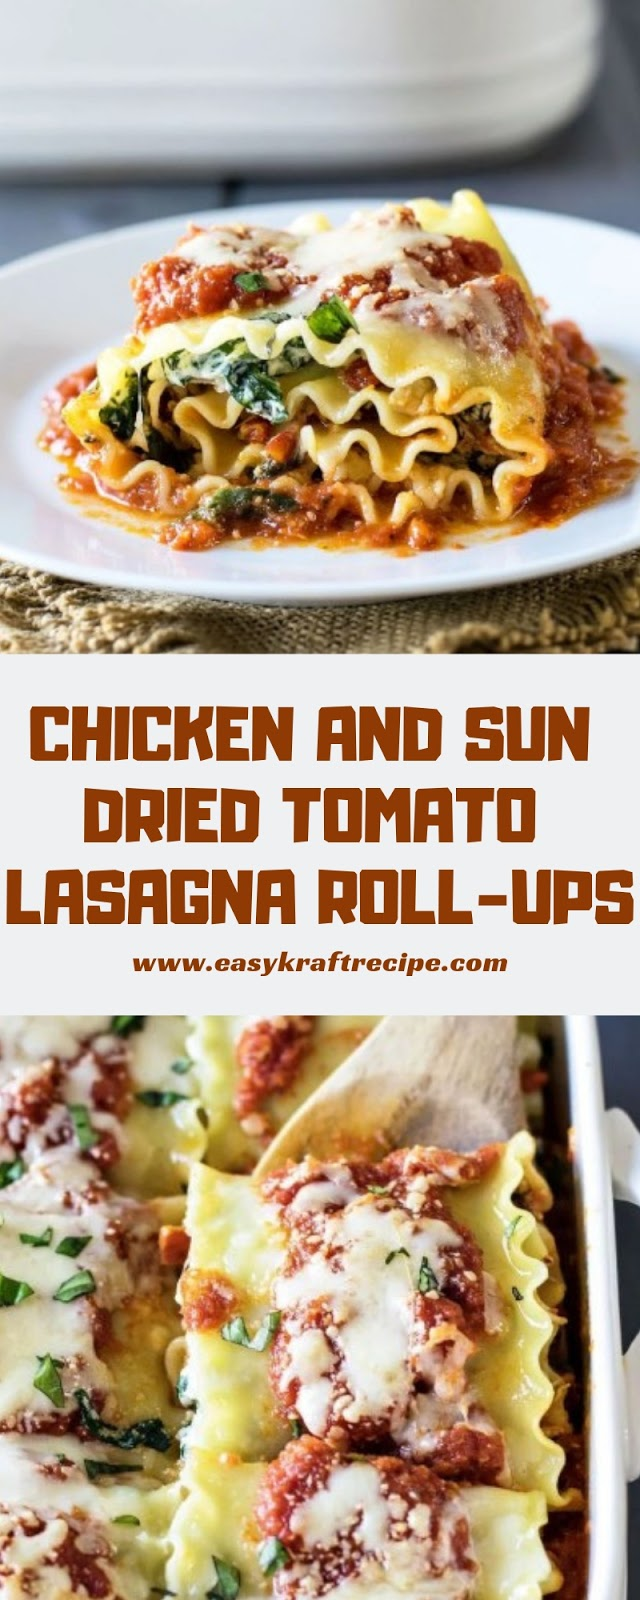 CHICKEN AND SUN DRIED TOMATO LASAGNA ROLL-UPS